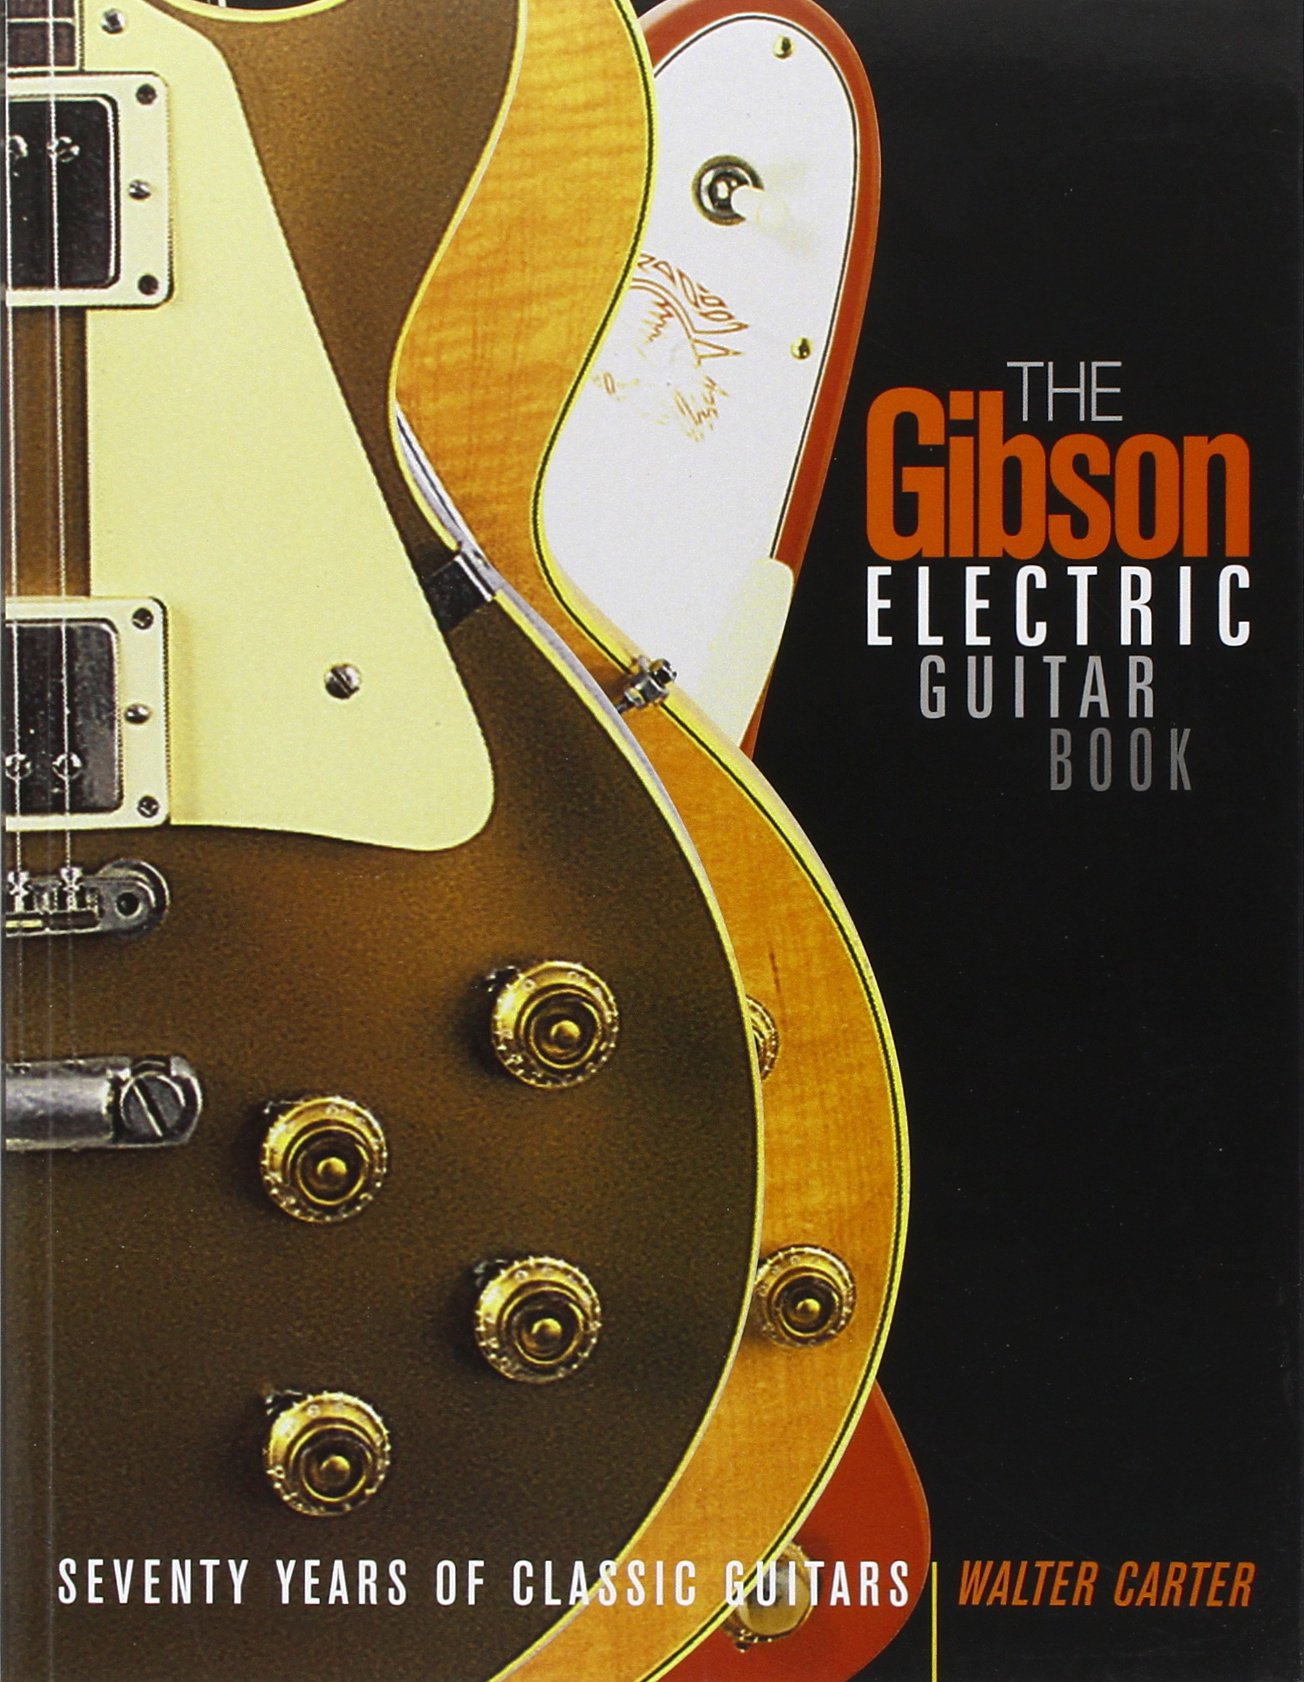 gibson electric guitar book seventy years of classic guitars